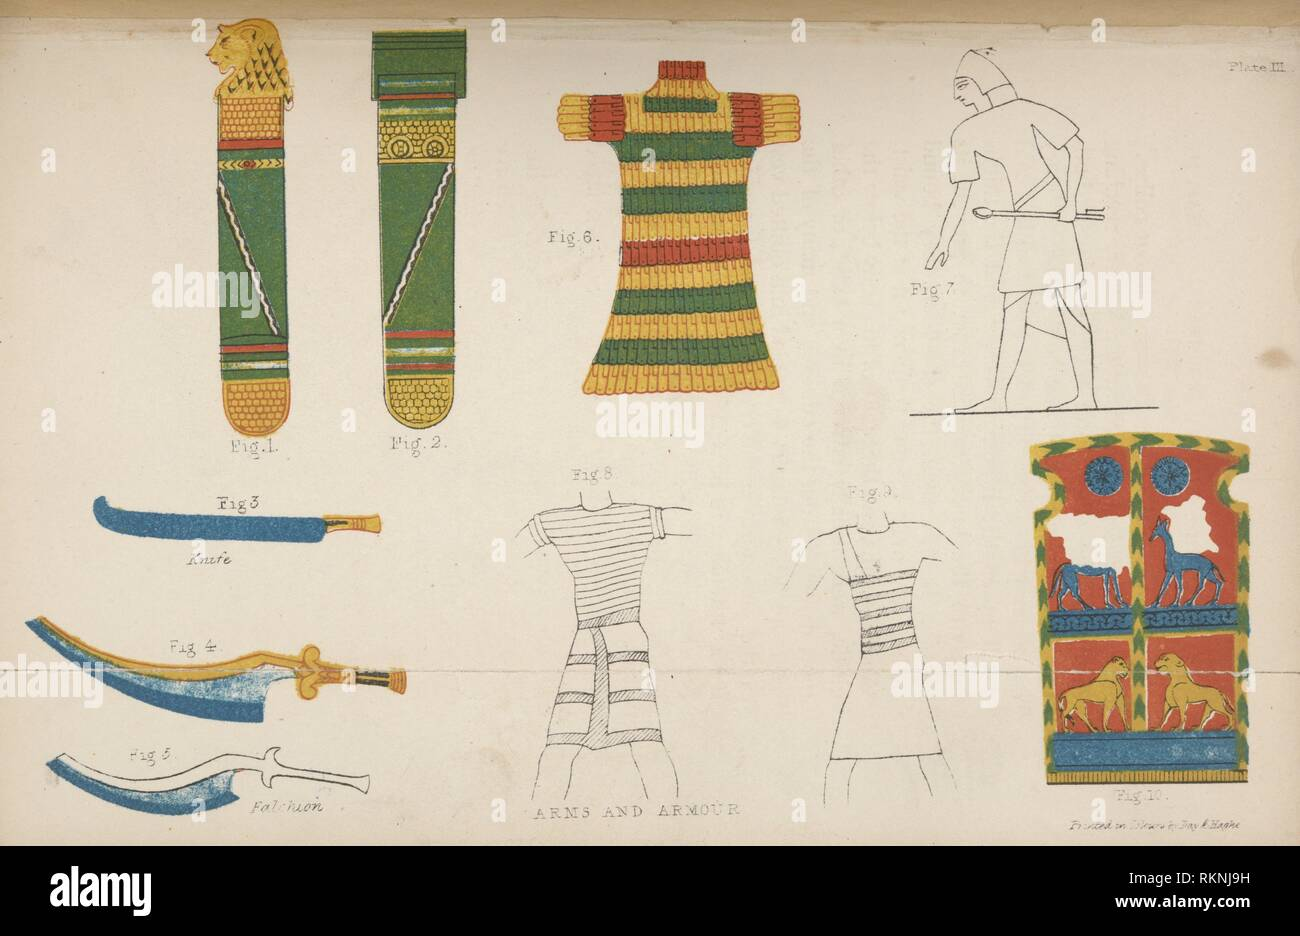 Arms and armour. Wilkinson, John Gardner, Sir, 1797-1875 (Author) Day & Haghe (Lithographer). Manners and customs of the ancient Egyptians, including - Stock Image